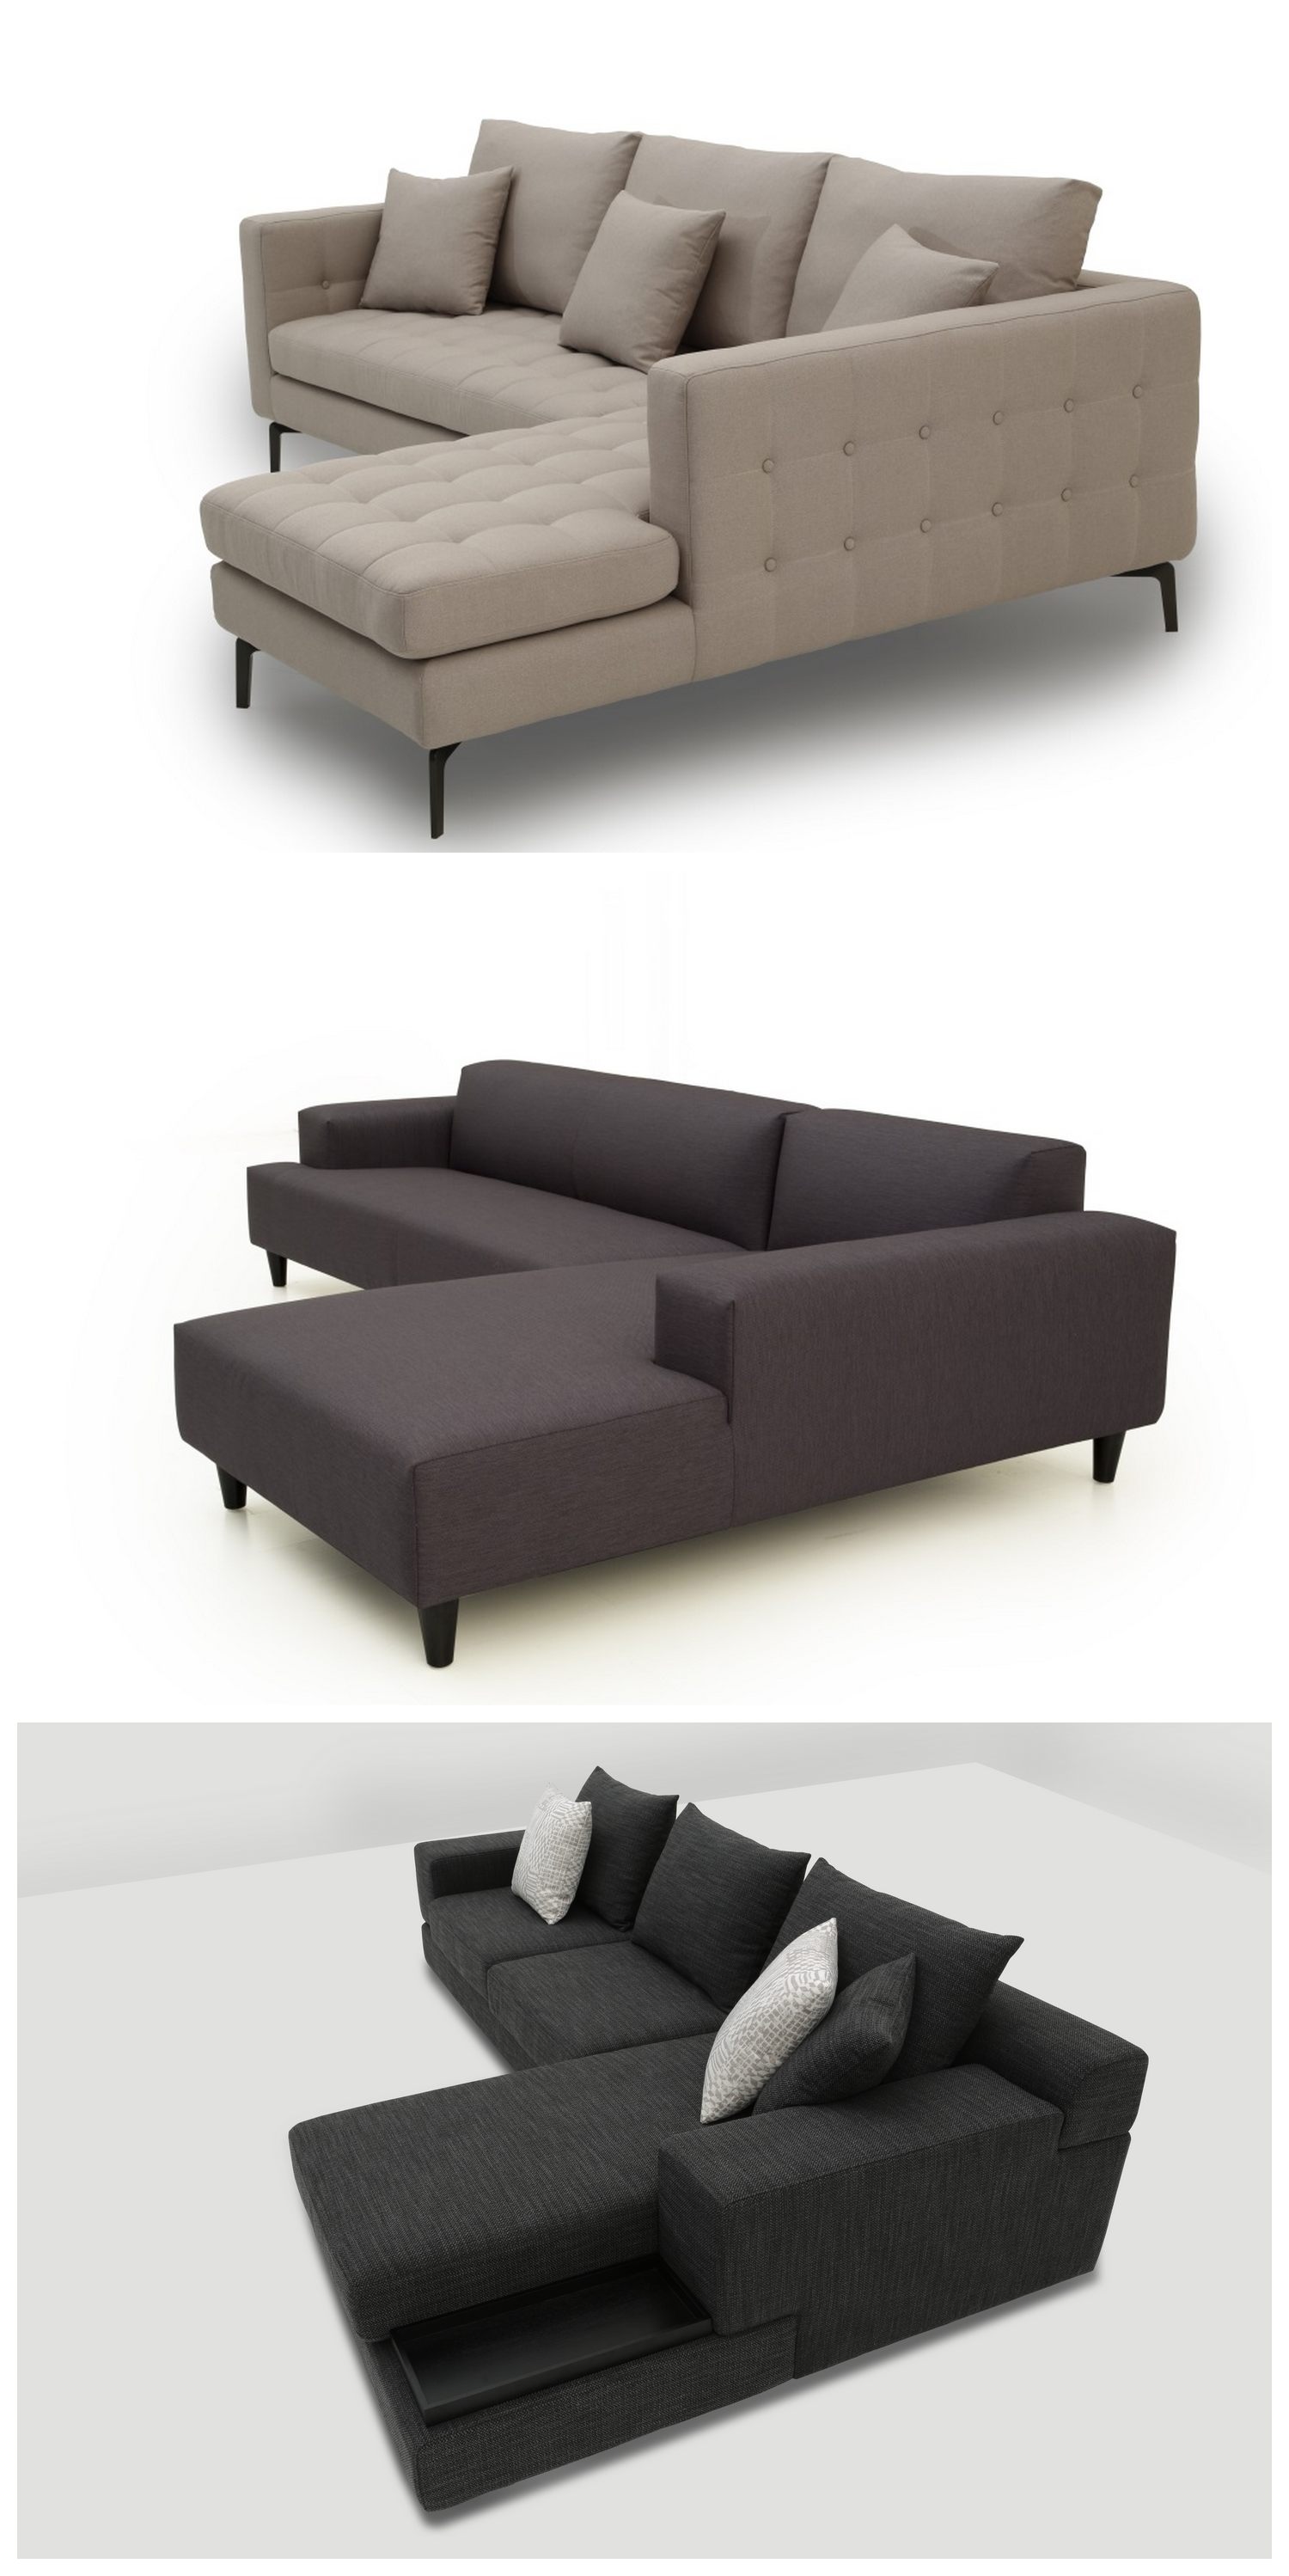 New Design Modern Sofa From Cocheen Sofaset Sofa Modernsofa Cocheendesign Livingroomsofa Furniture Newdesign Modern Sofa Designs Furniture Sofa Design